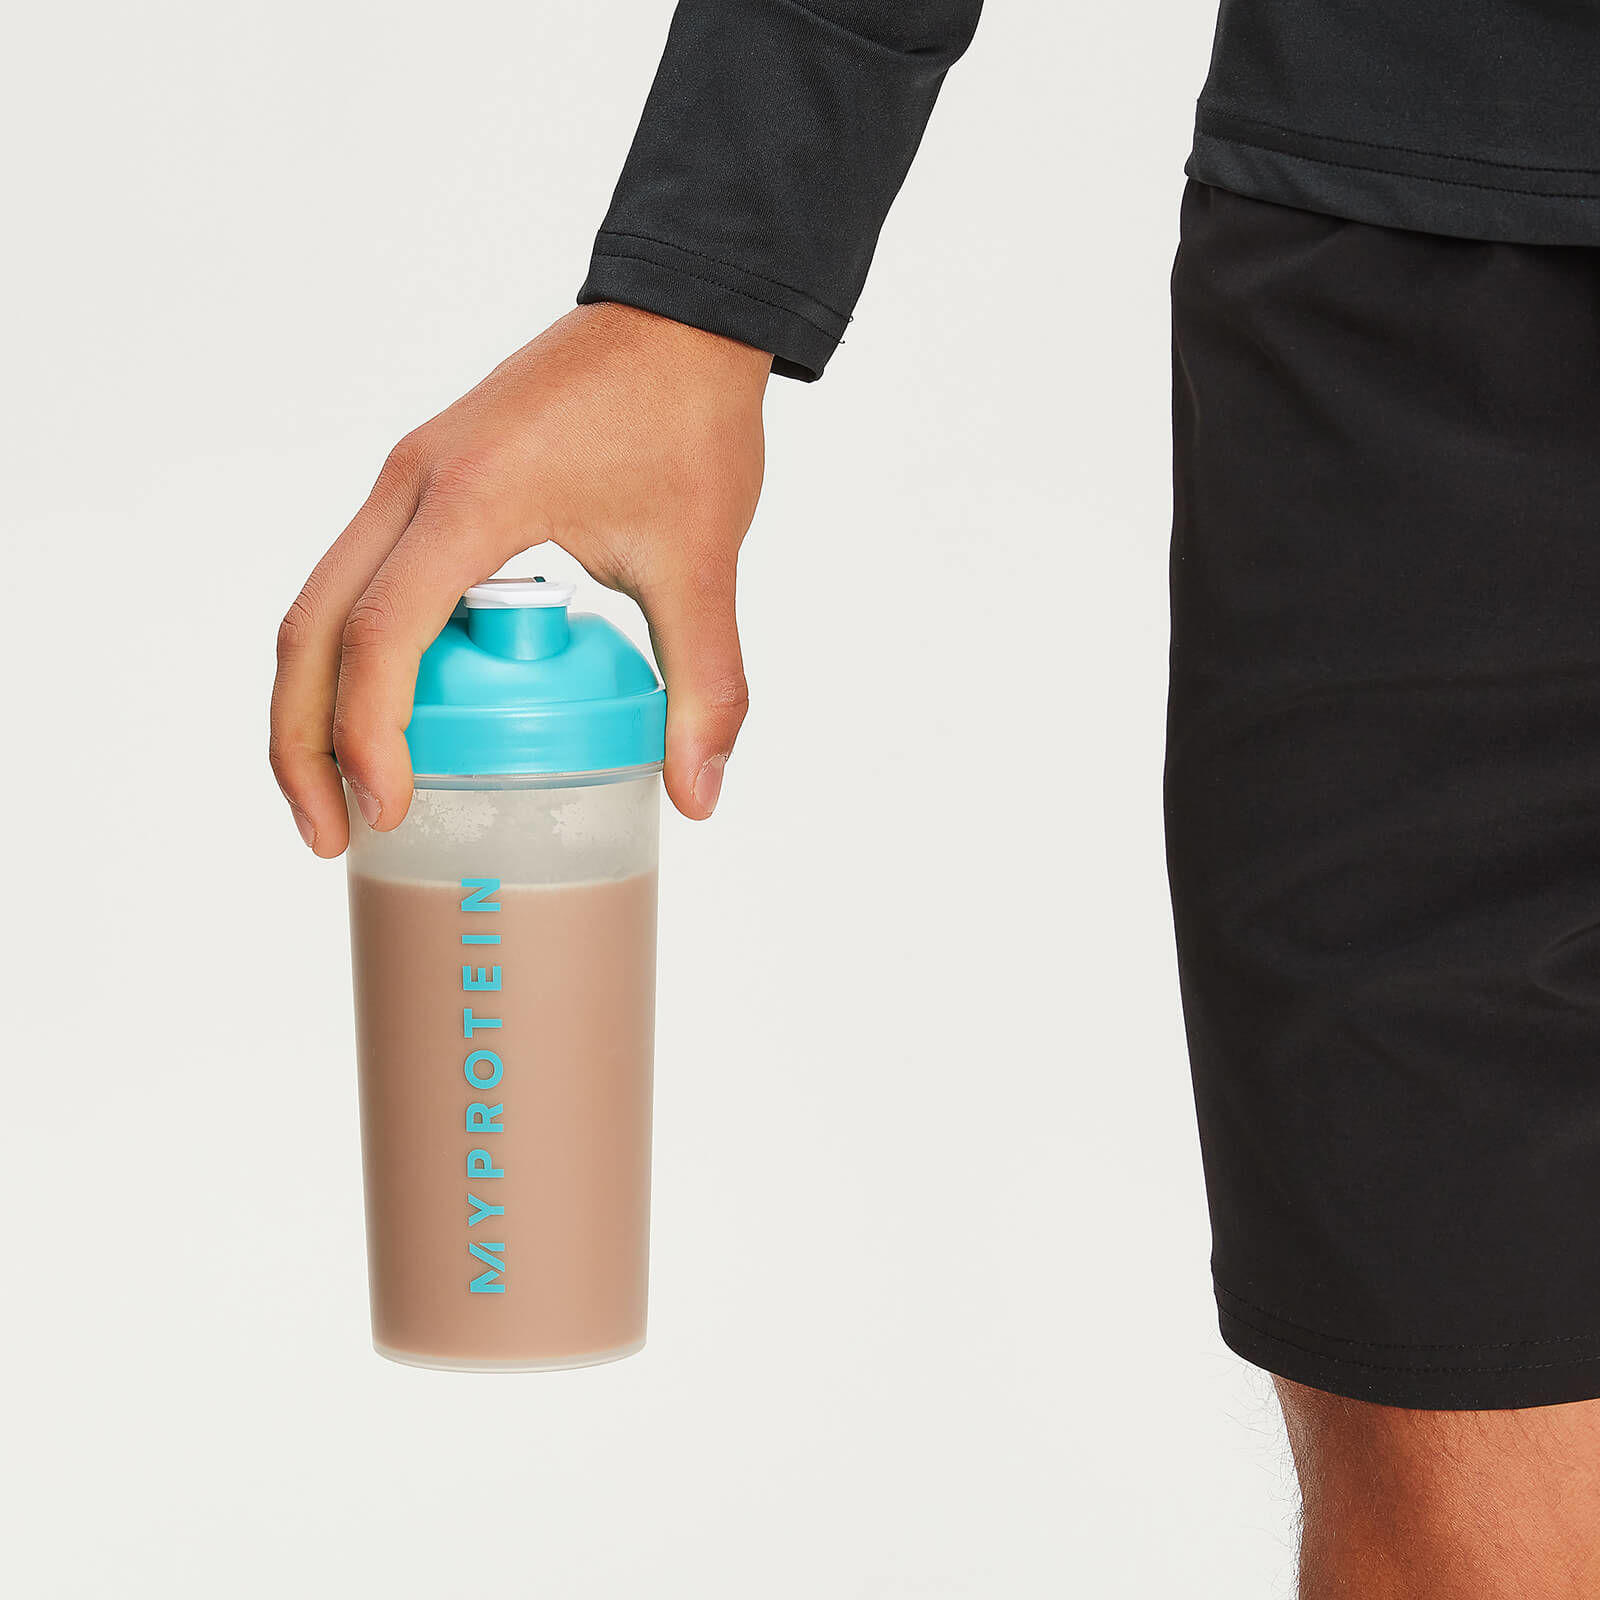 Bouteille mélangeuse Shaker Myprotein